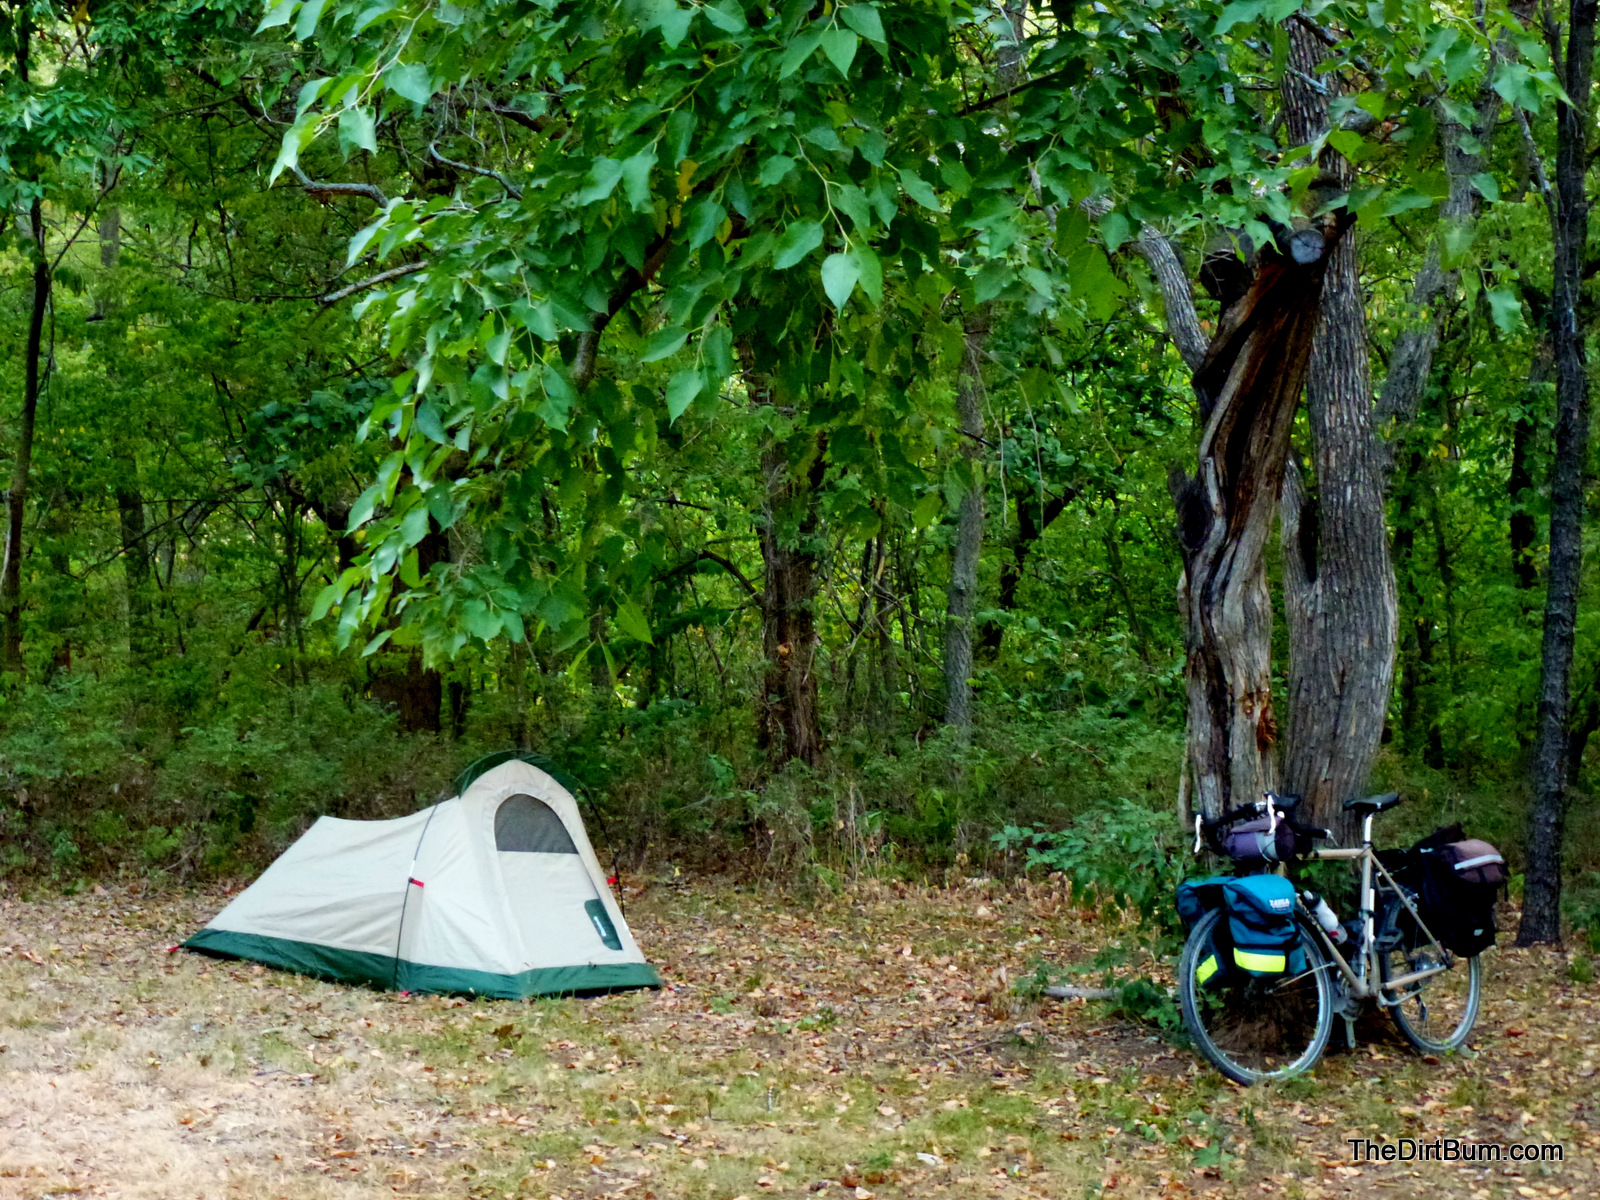 Bike camping at leavenworth state fishing lake for Fishing campsites near me